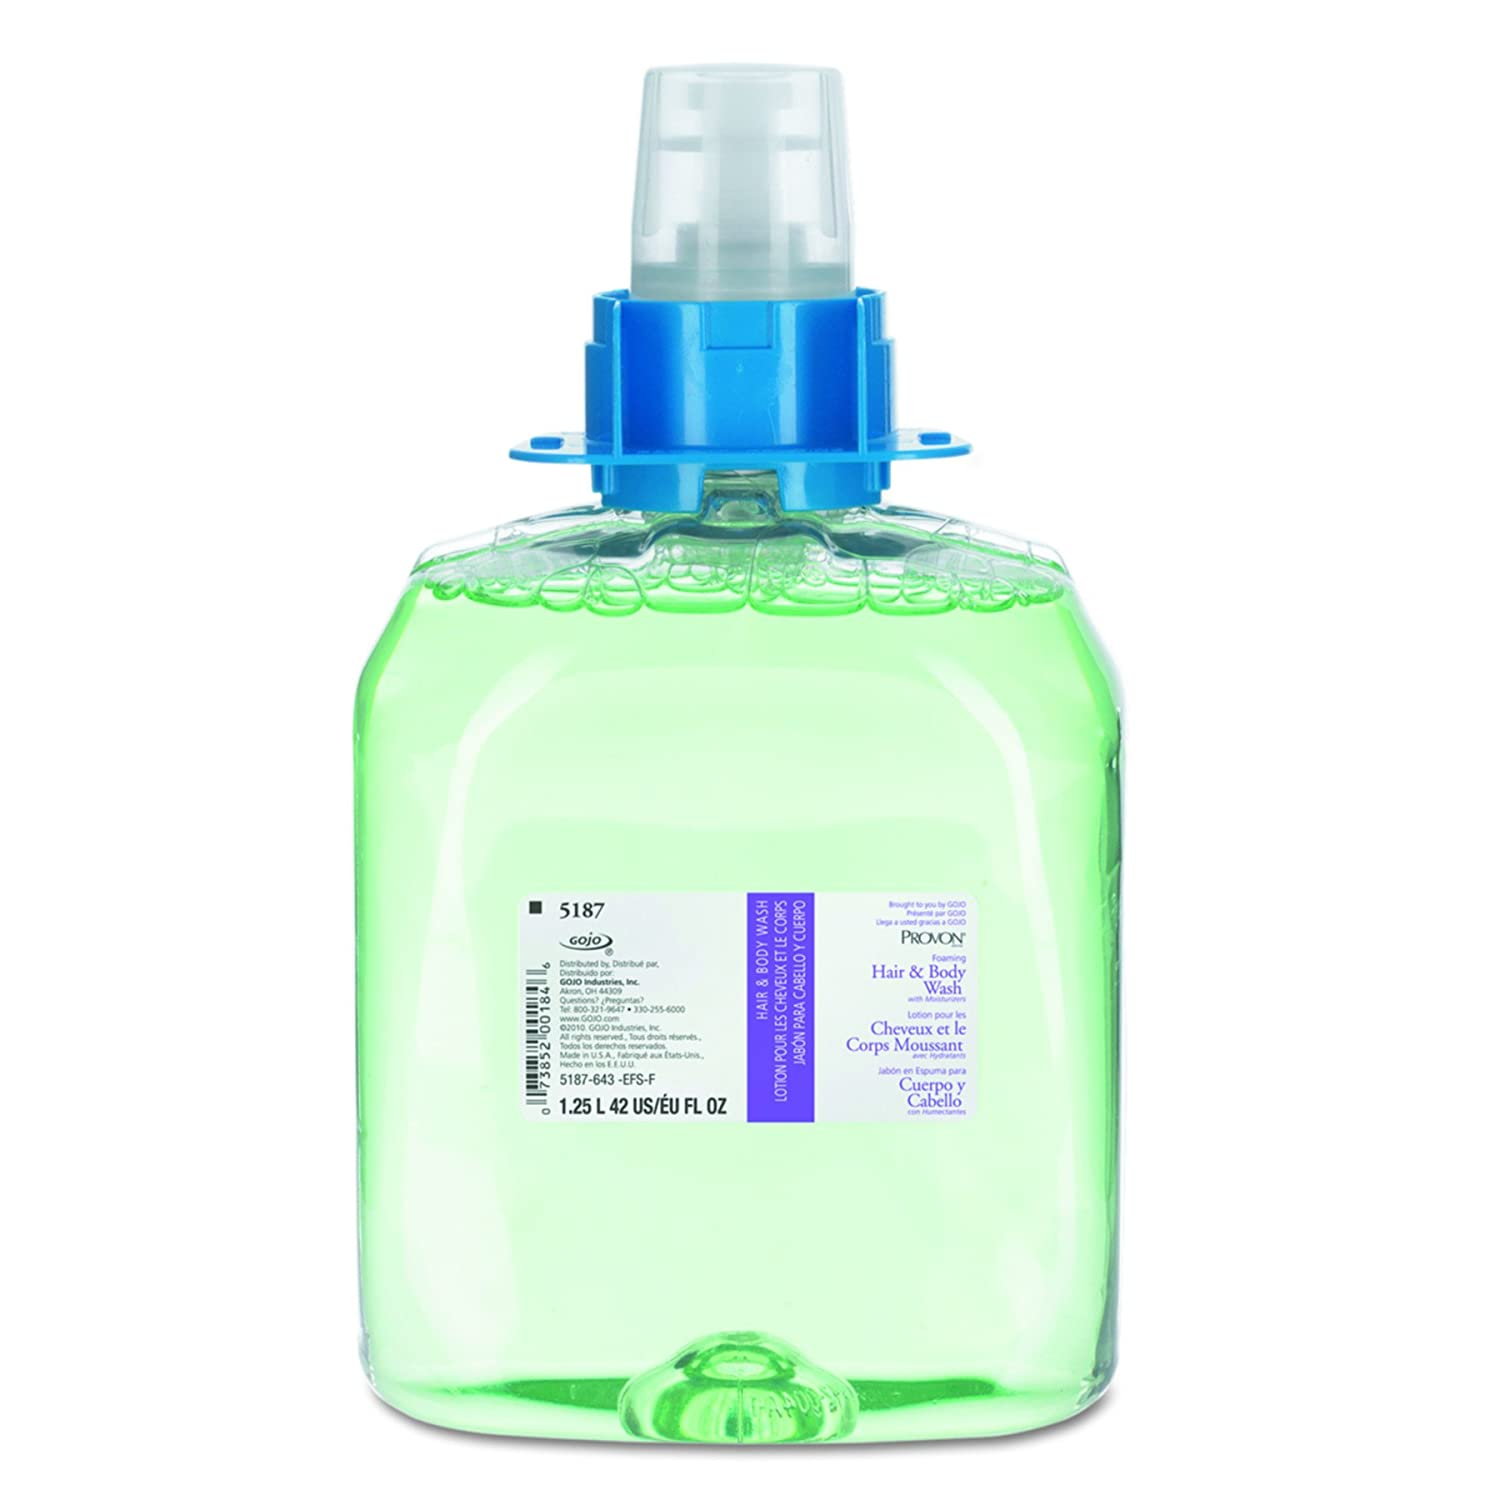 Provon 5187-03 FMX-12 Foaming Antimicrobial Handwash with Moisturizers, 1250 mL Refill, 3-Pack 000UUU-000